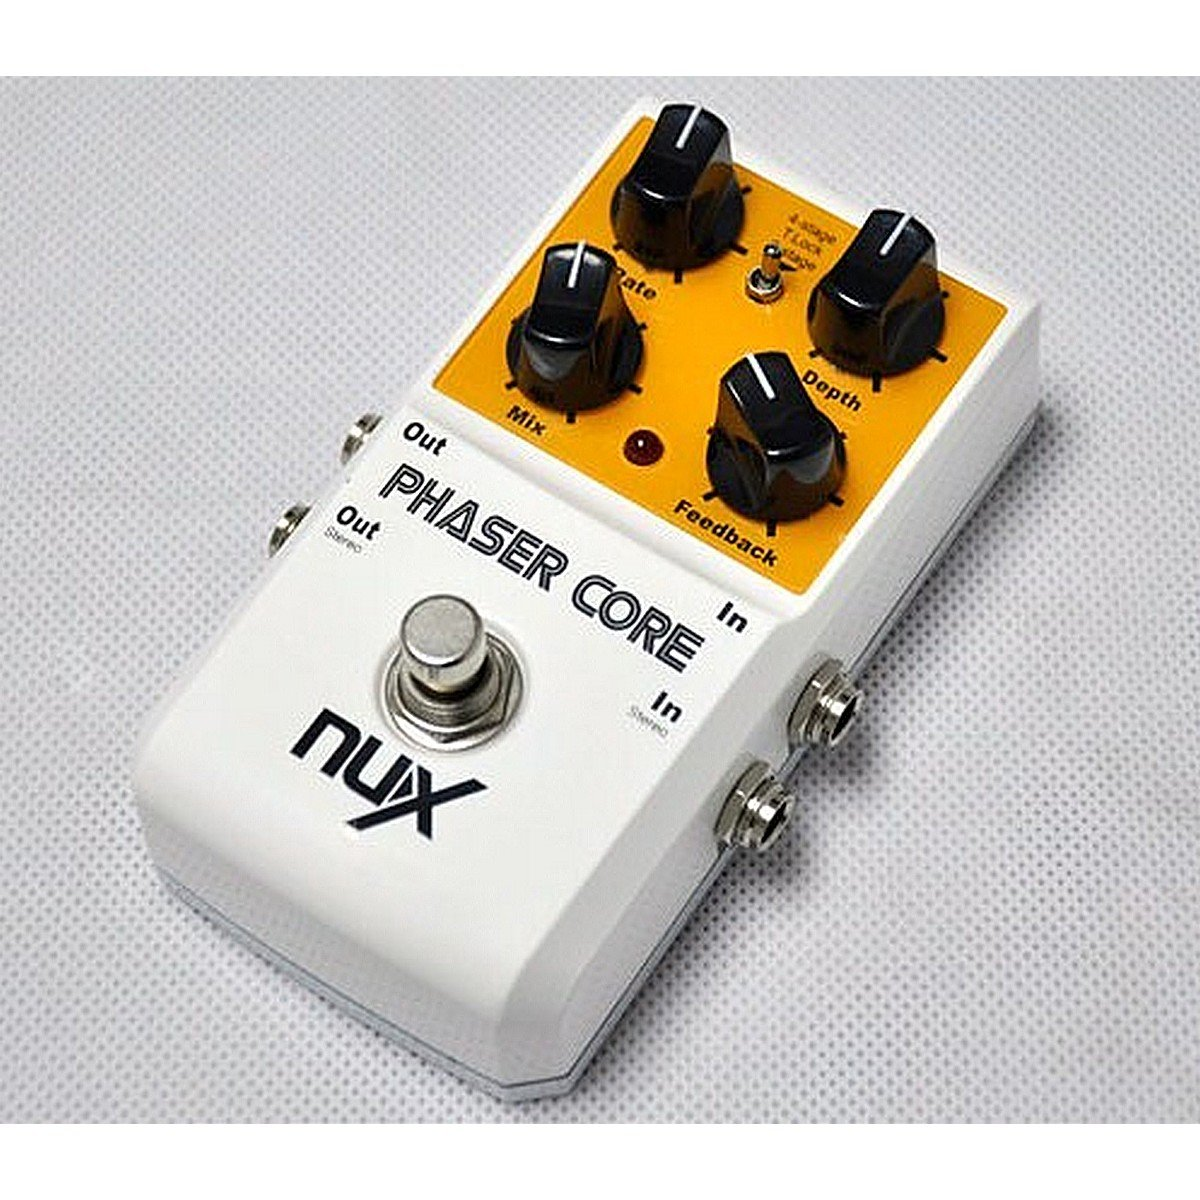 Anysun@ NUX Stomp Boxes Phaser Core 4 - Stage and Tape 8-stage Core Series Guitar Effect Pedal True Bypass Musical Instrument